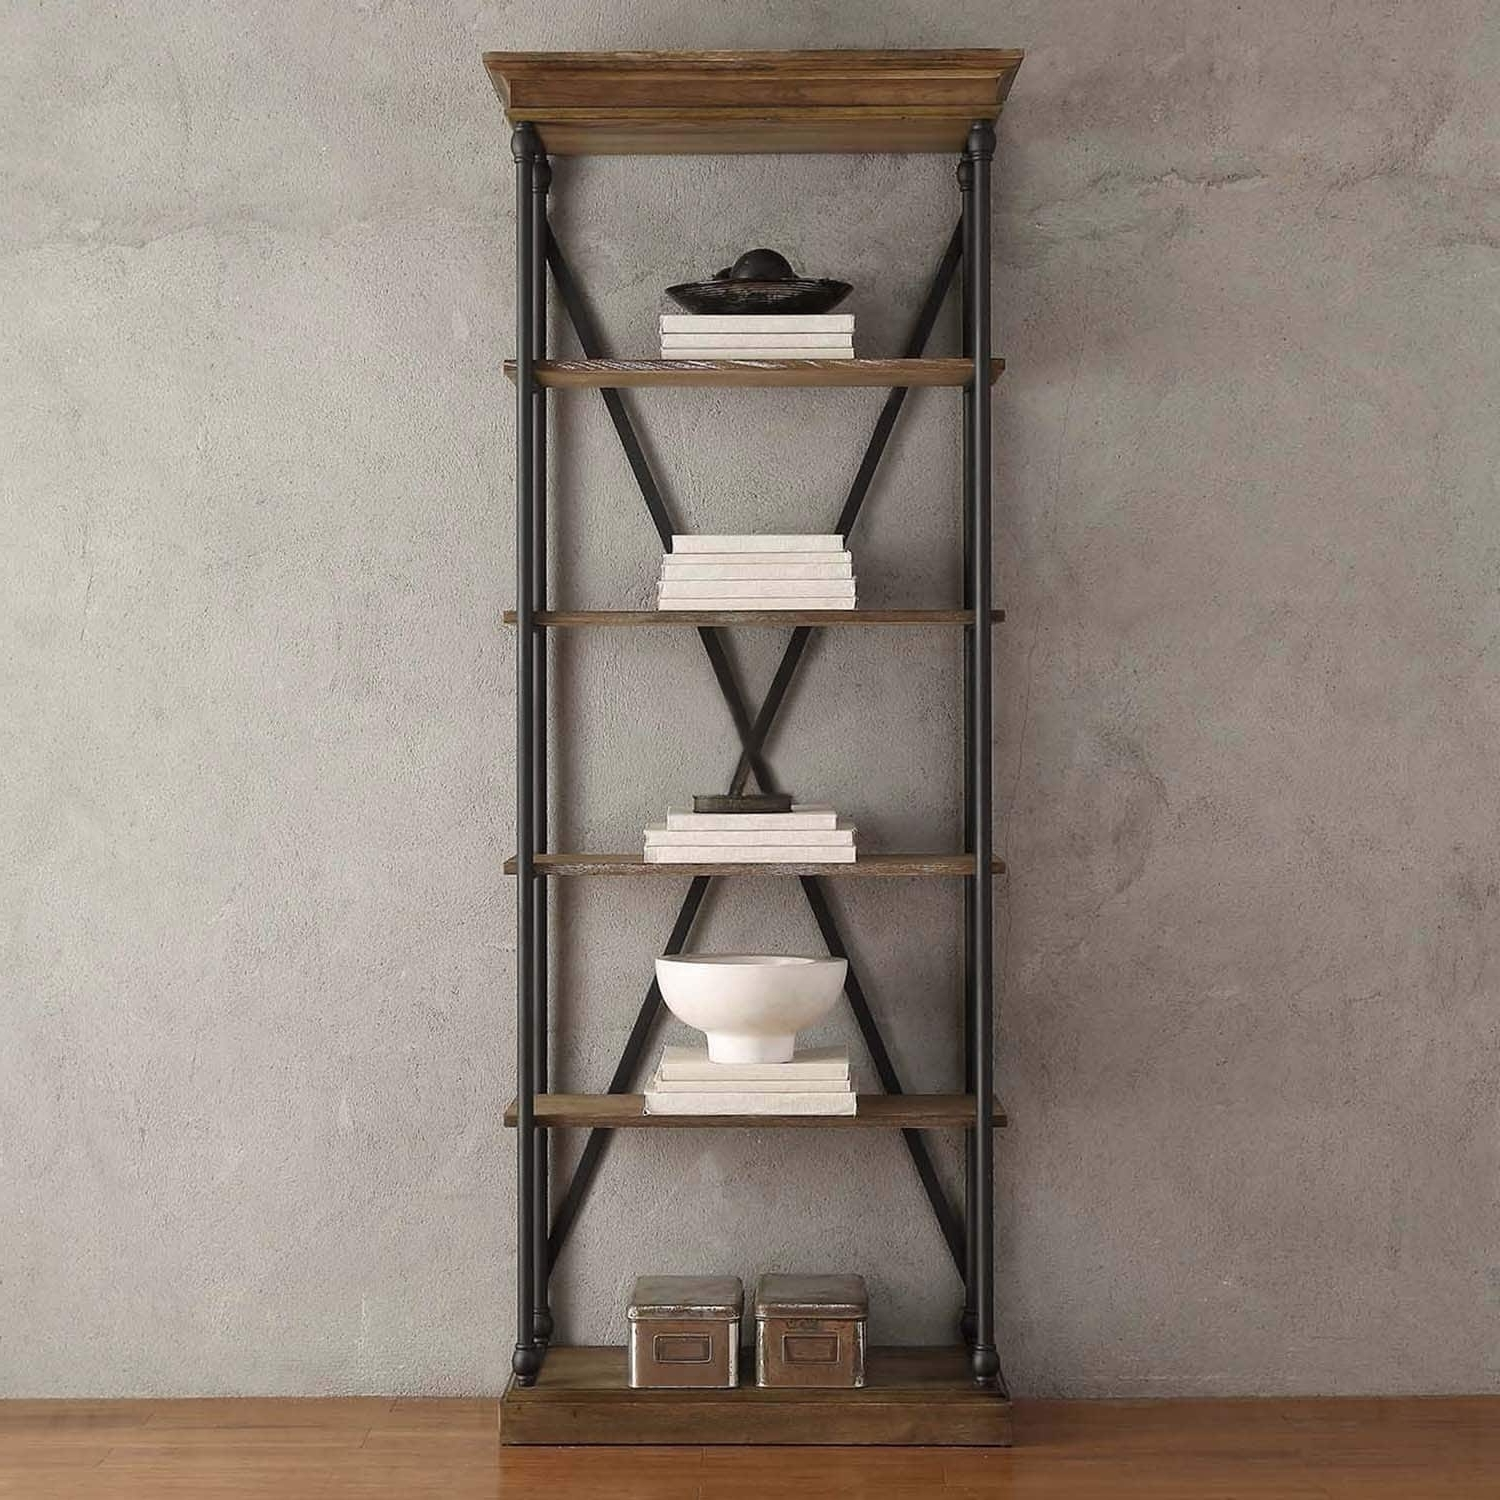 Trendy Barnstone Cornice Etagere Bookcaseinspire Q Artisan – Free Intended For Etagere Bookcases (View 12 of 15)